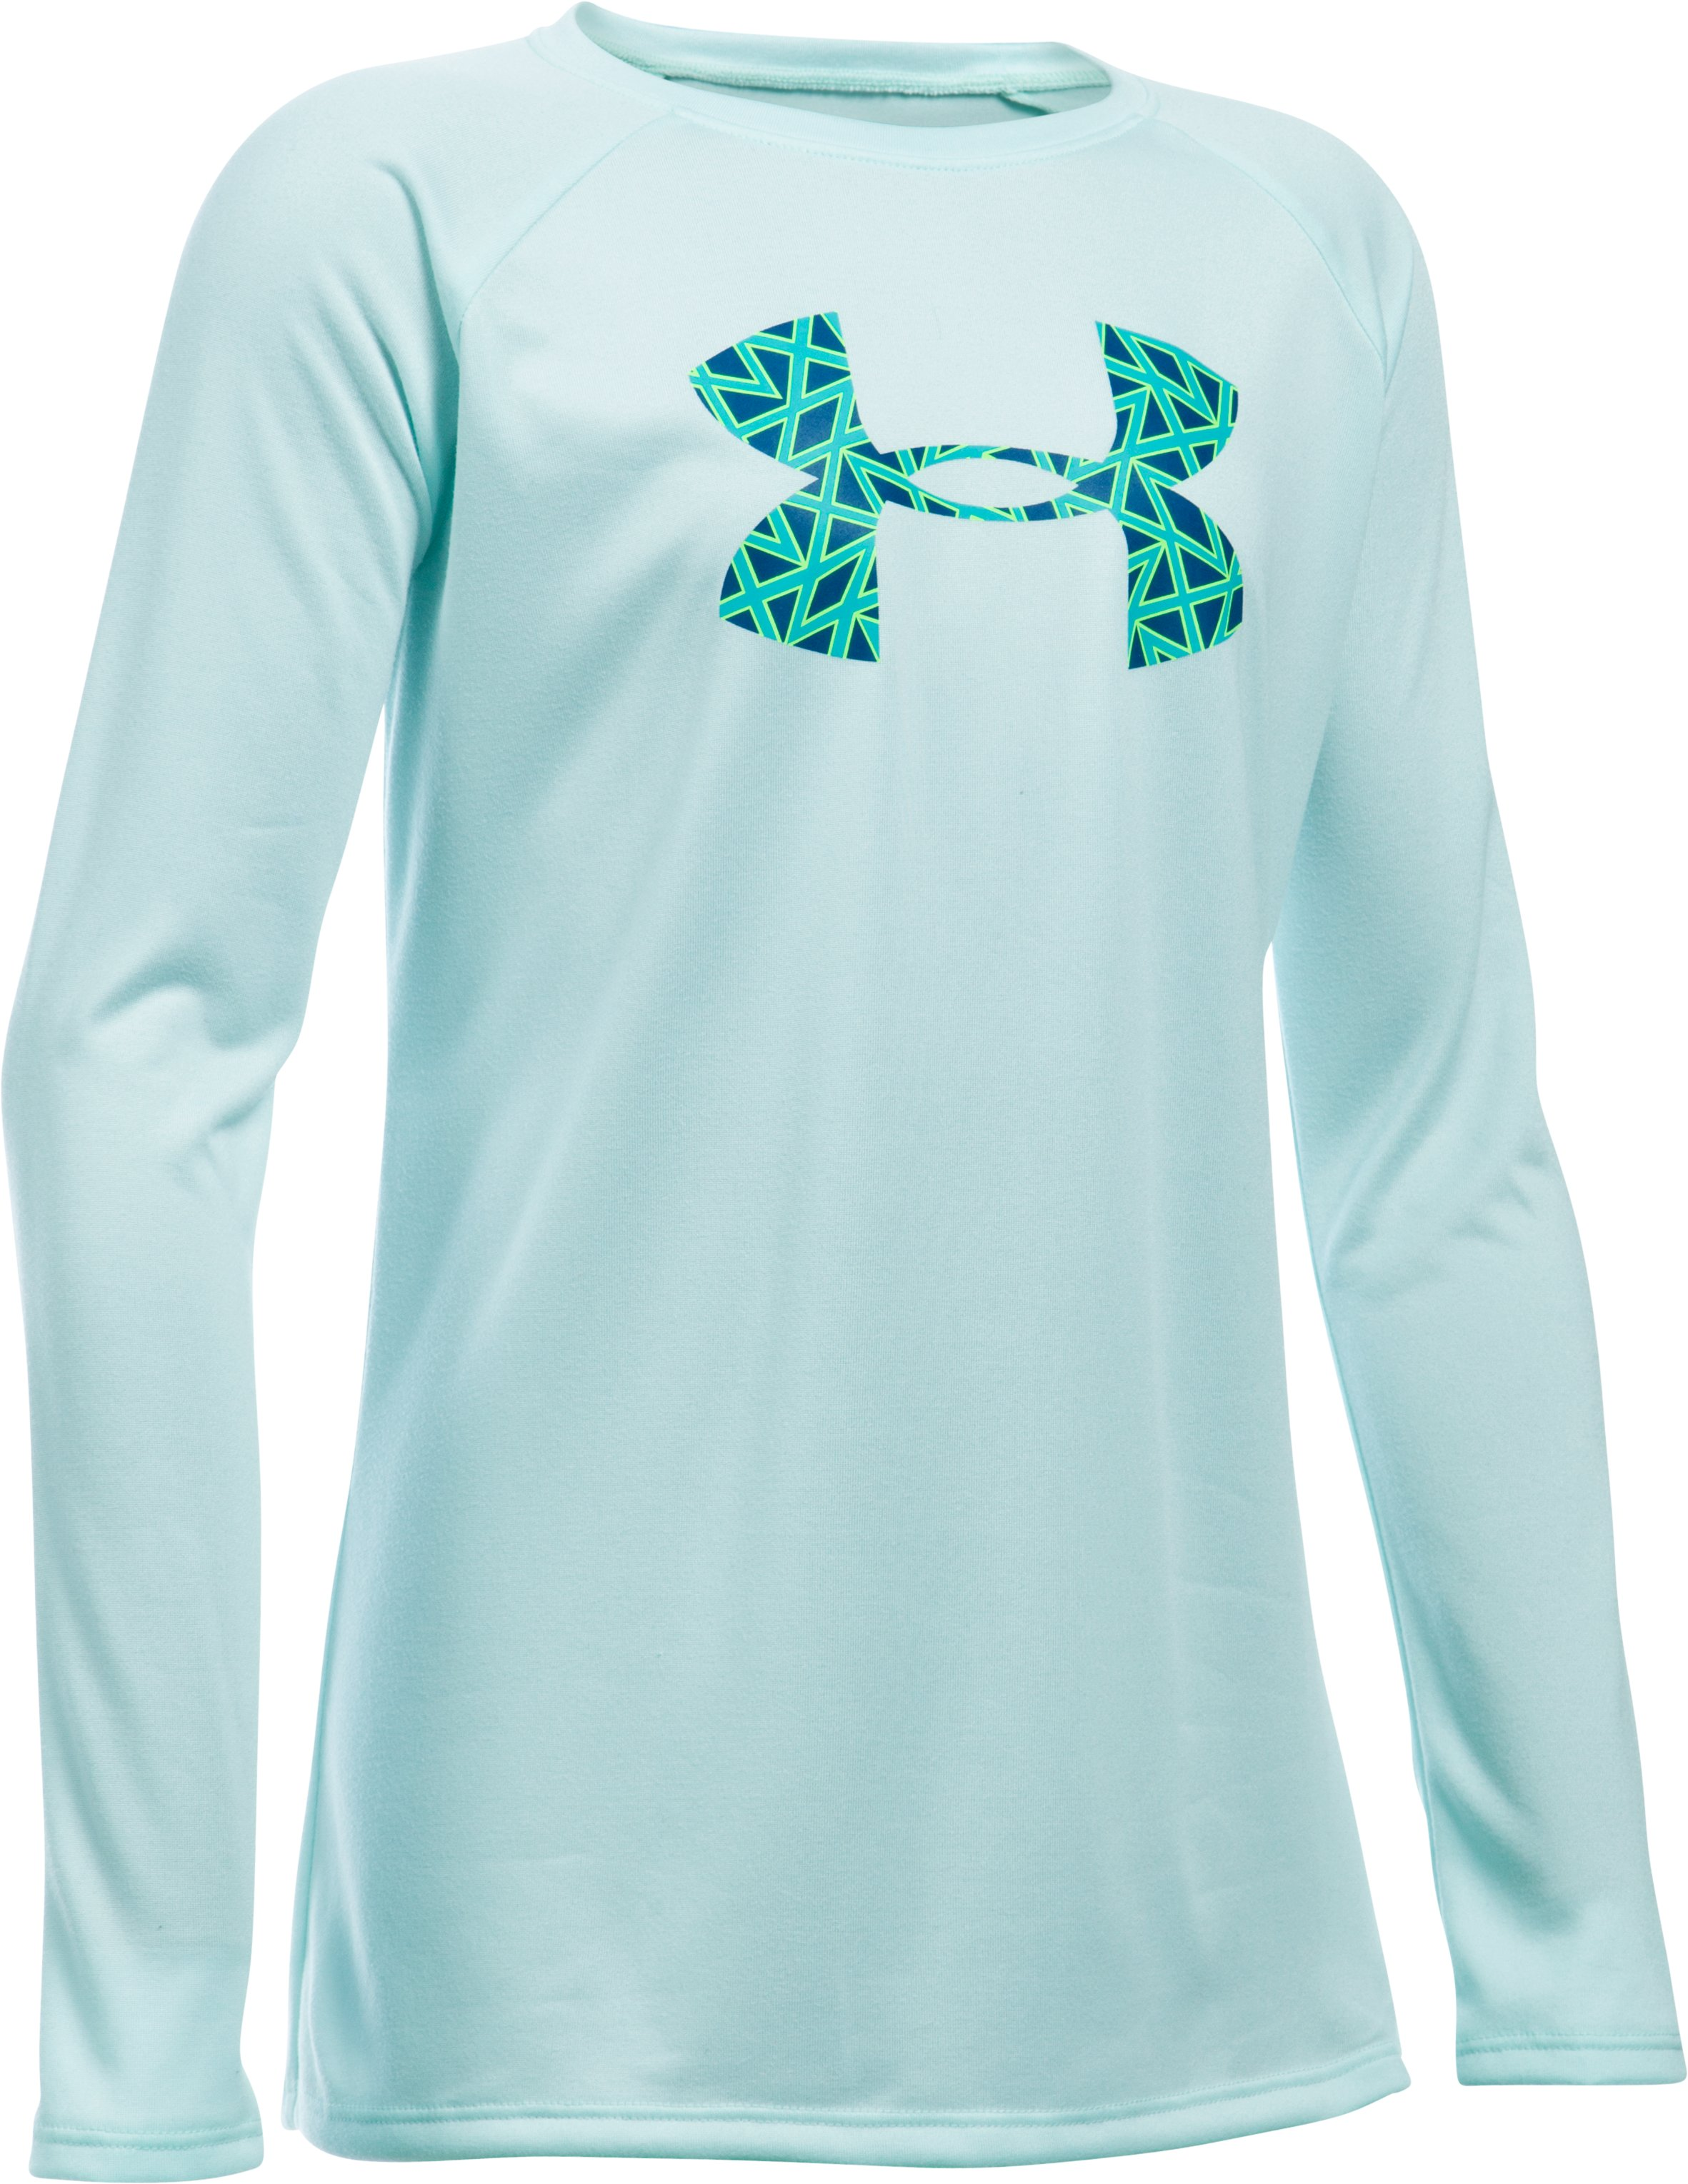 Girls' UA Big Logo Long Sleeve T-Shirt, AQUA FALLS